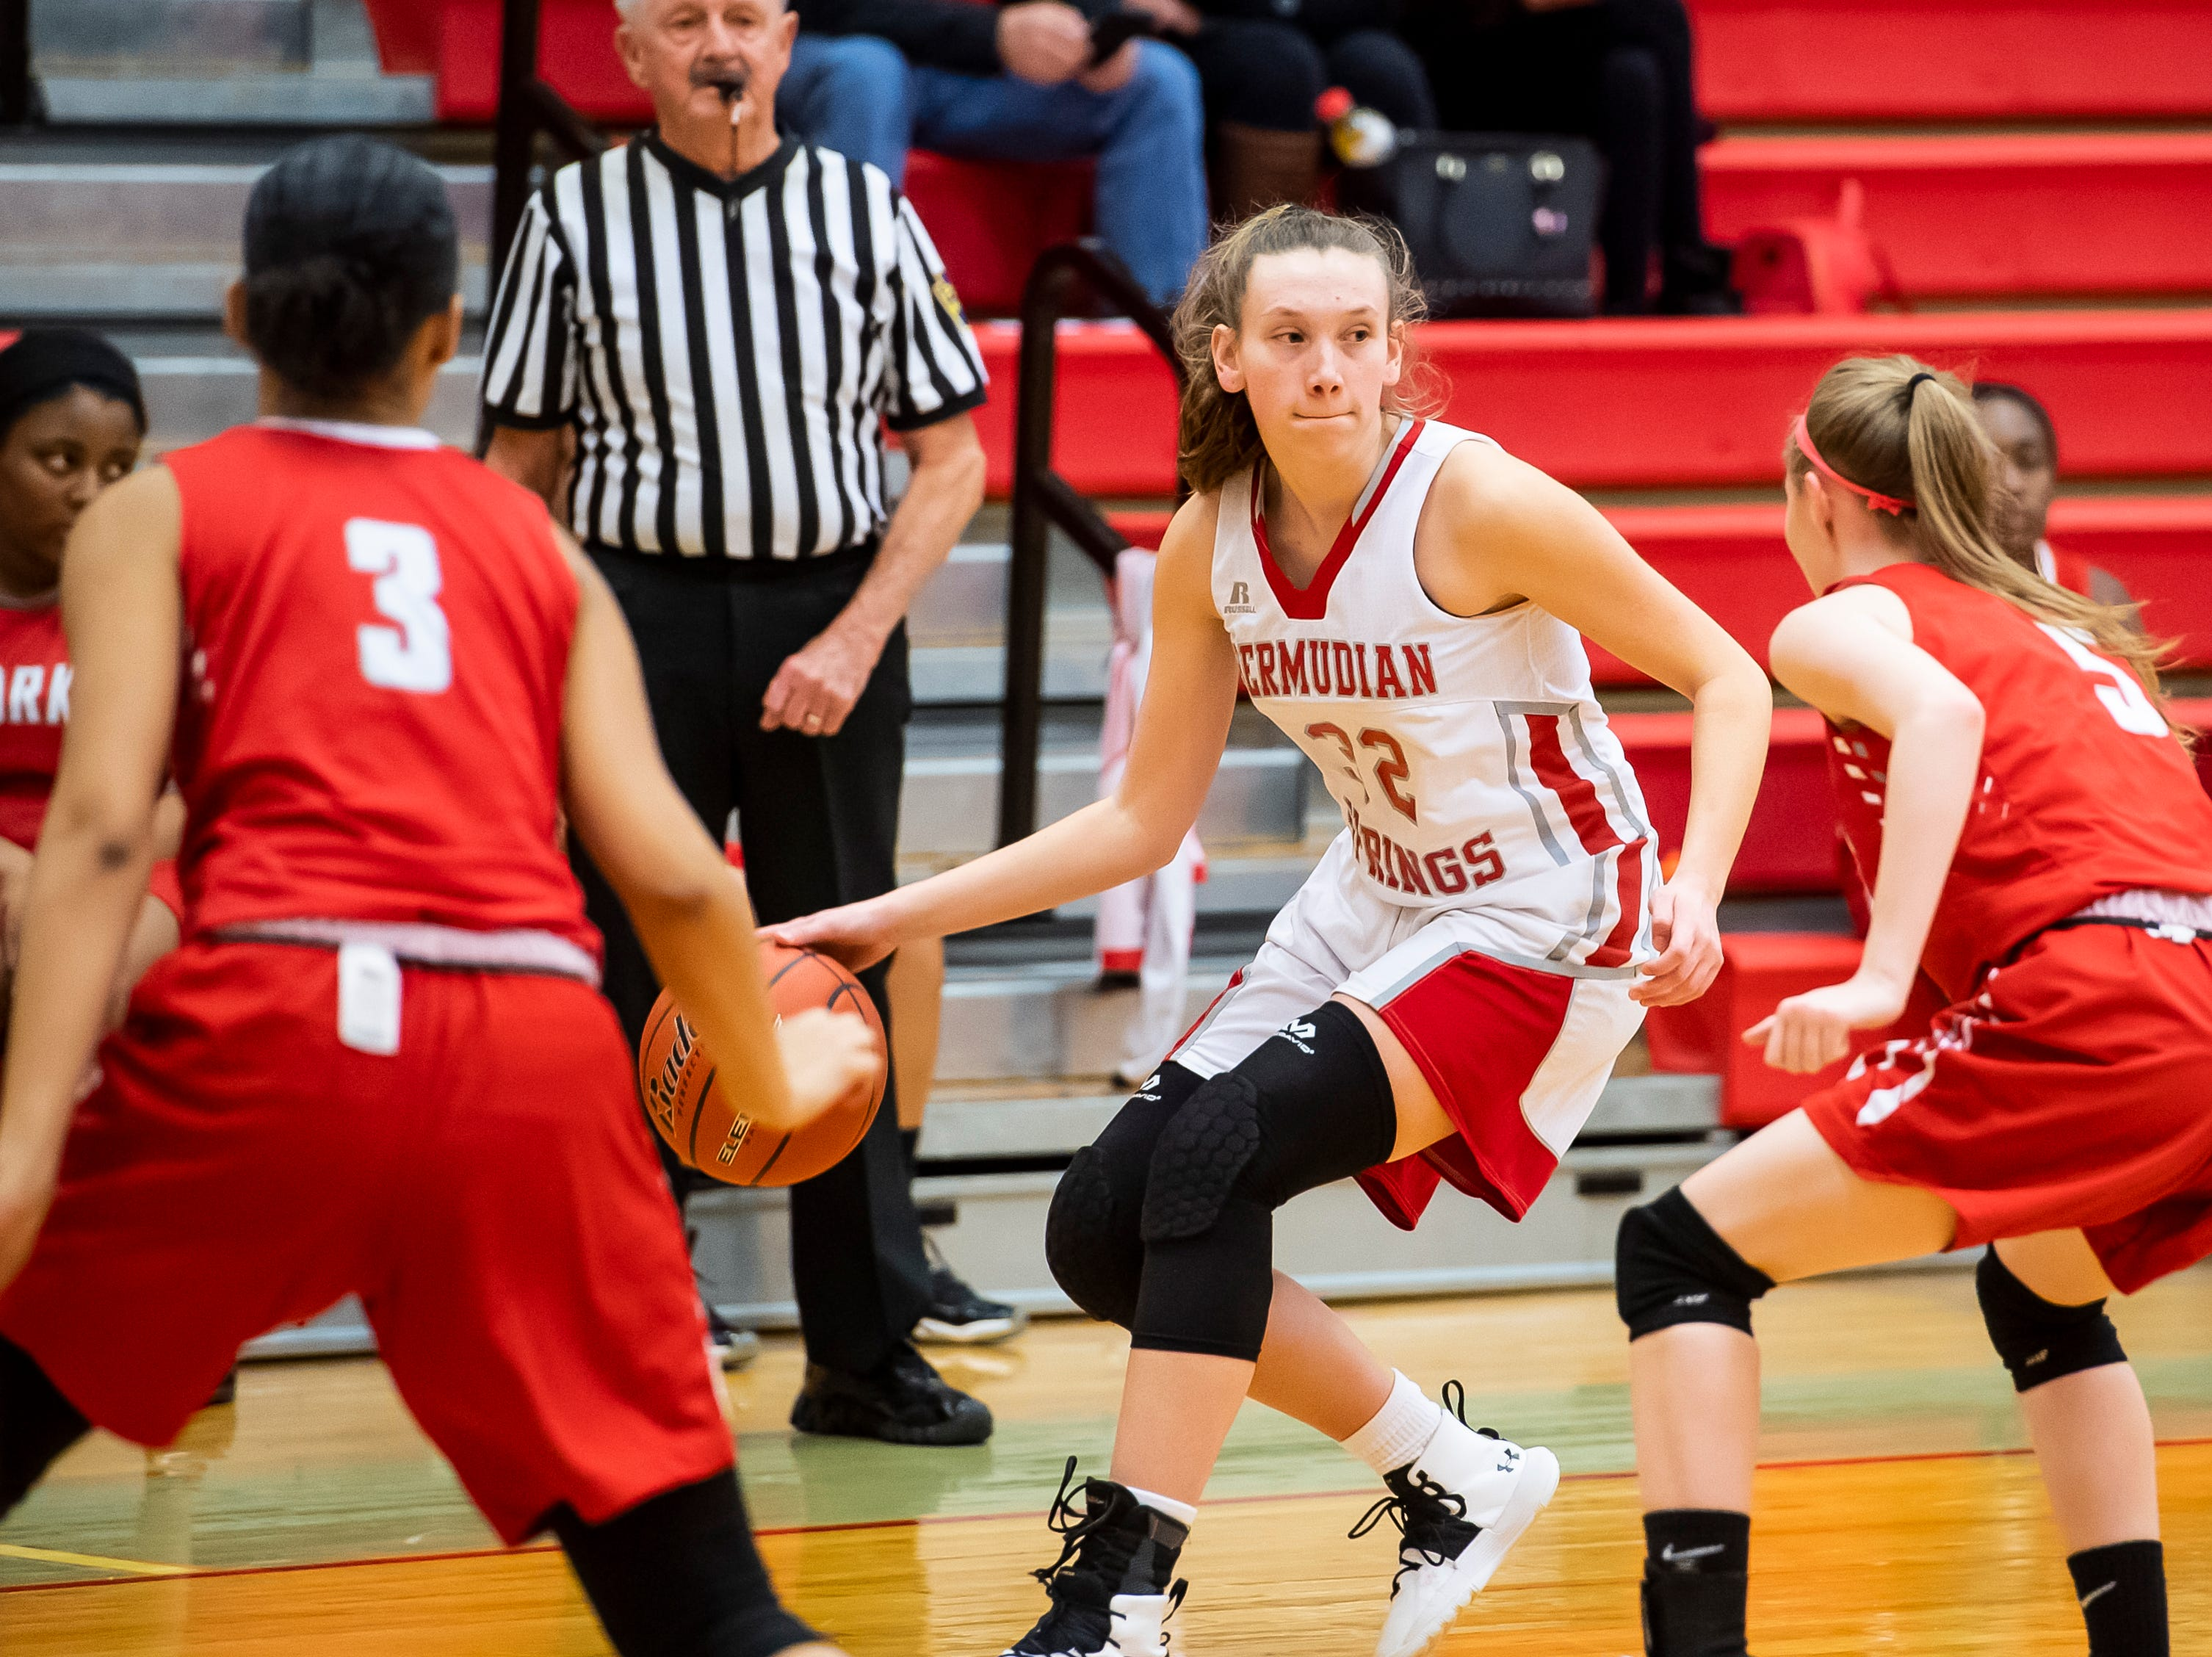 Bermudian Springs' Arden Bealmear (32) dribbles the ball during play play against York Country Day School at Bermudian Springs High School on Monday, January 14, 2019. The Eagles won 59-20.